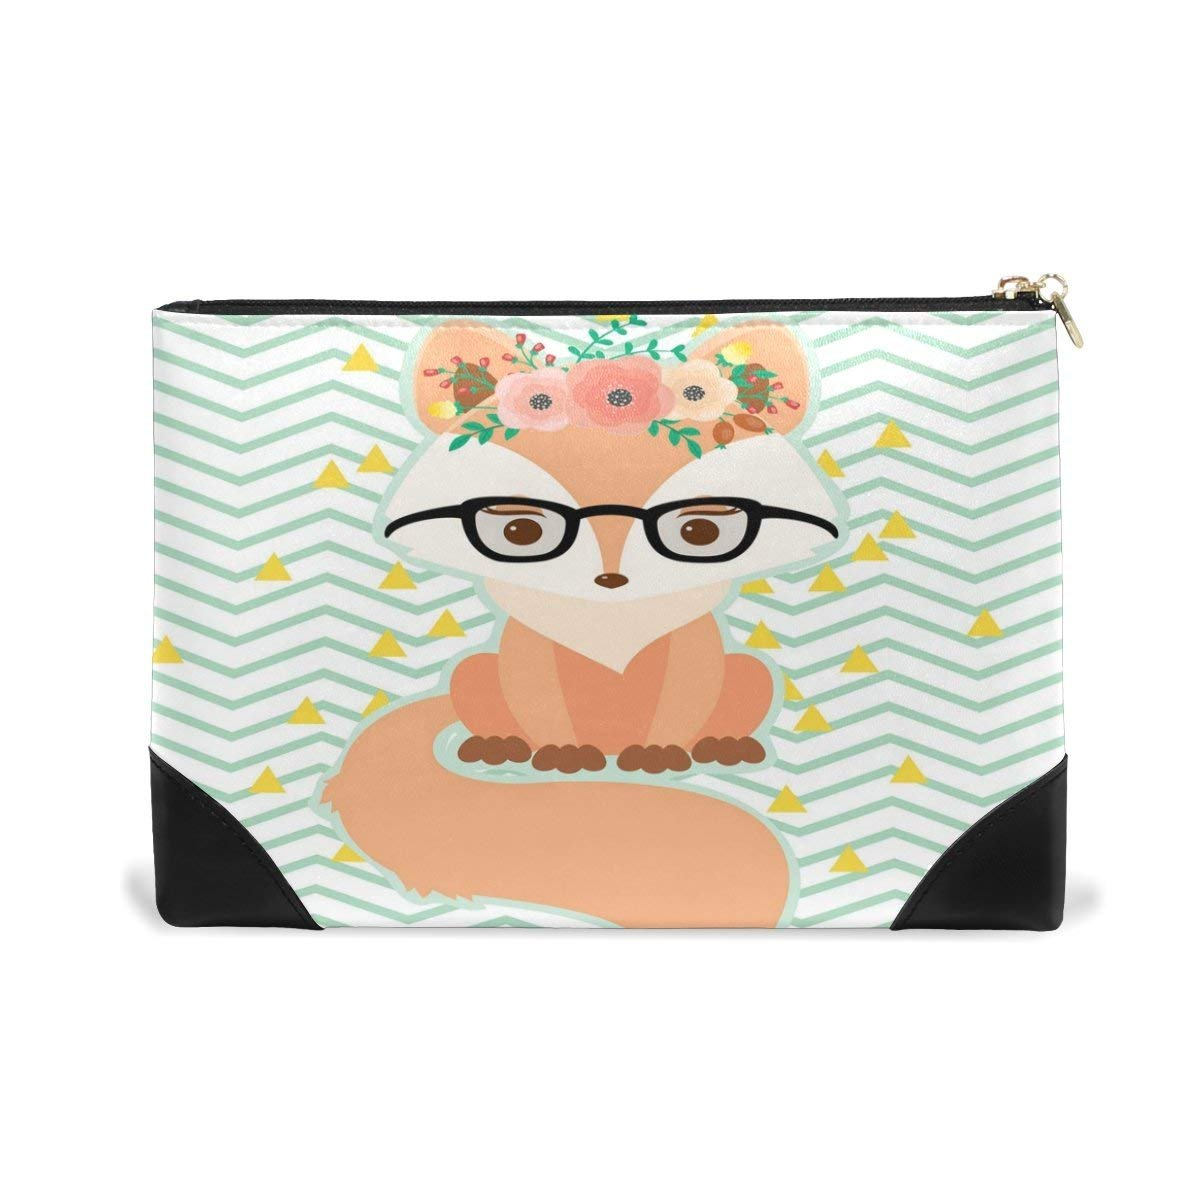 BLEFE Chevron Fox in Glasses Floral Wreath Makeup Cosmetic Bag Pouch Travel Bag for Women Girls